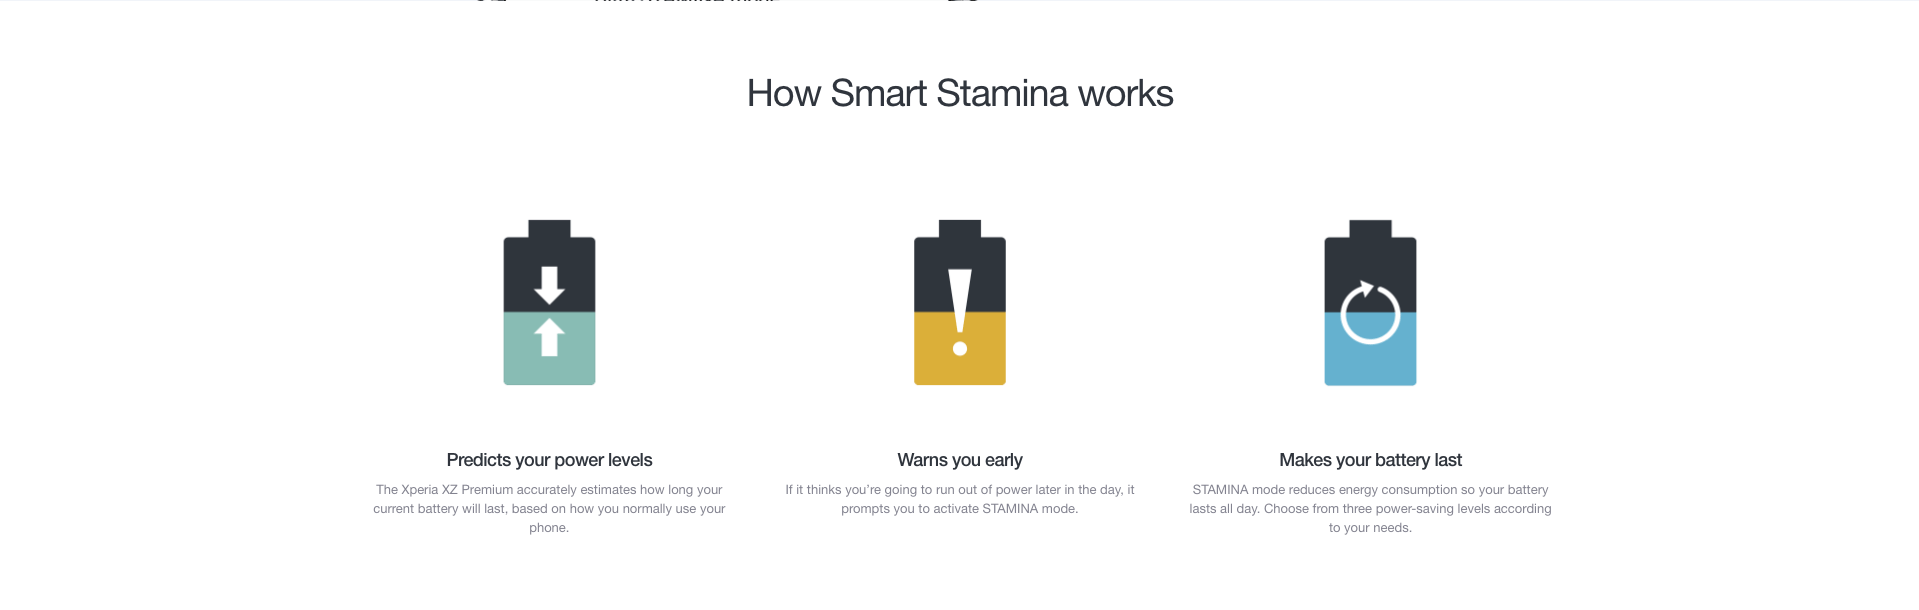 Graphic explanation of Sony smart stamina technology